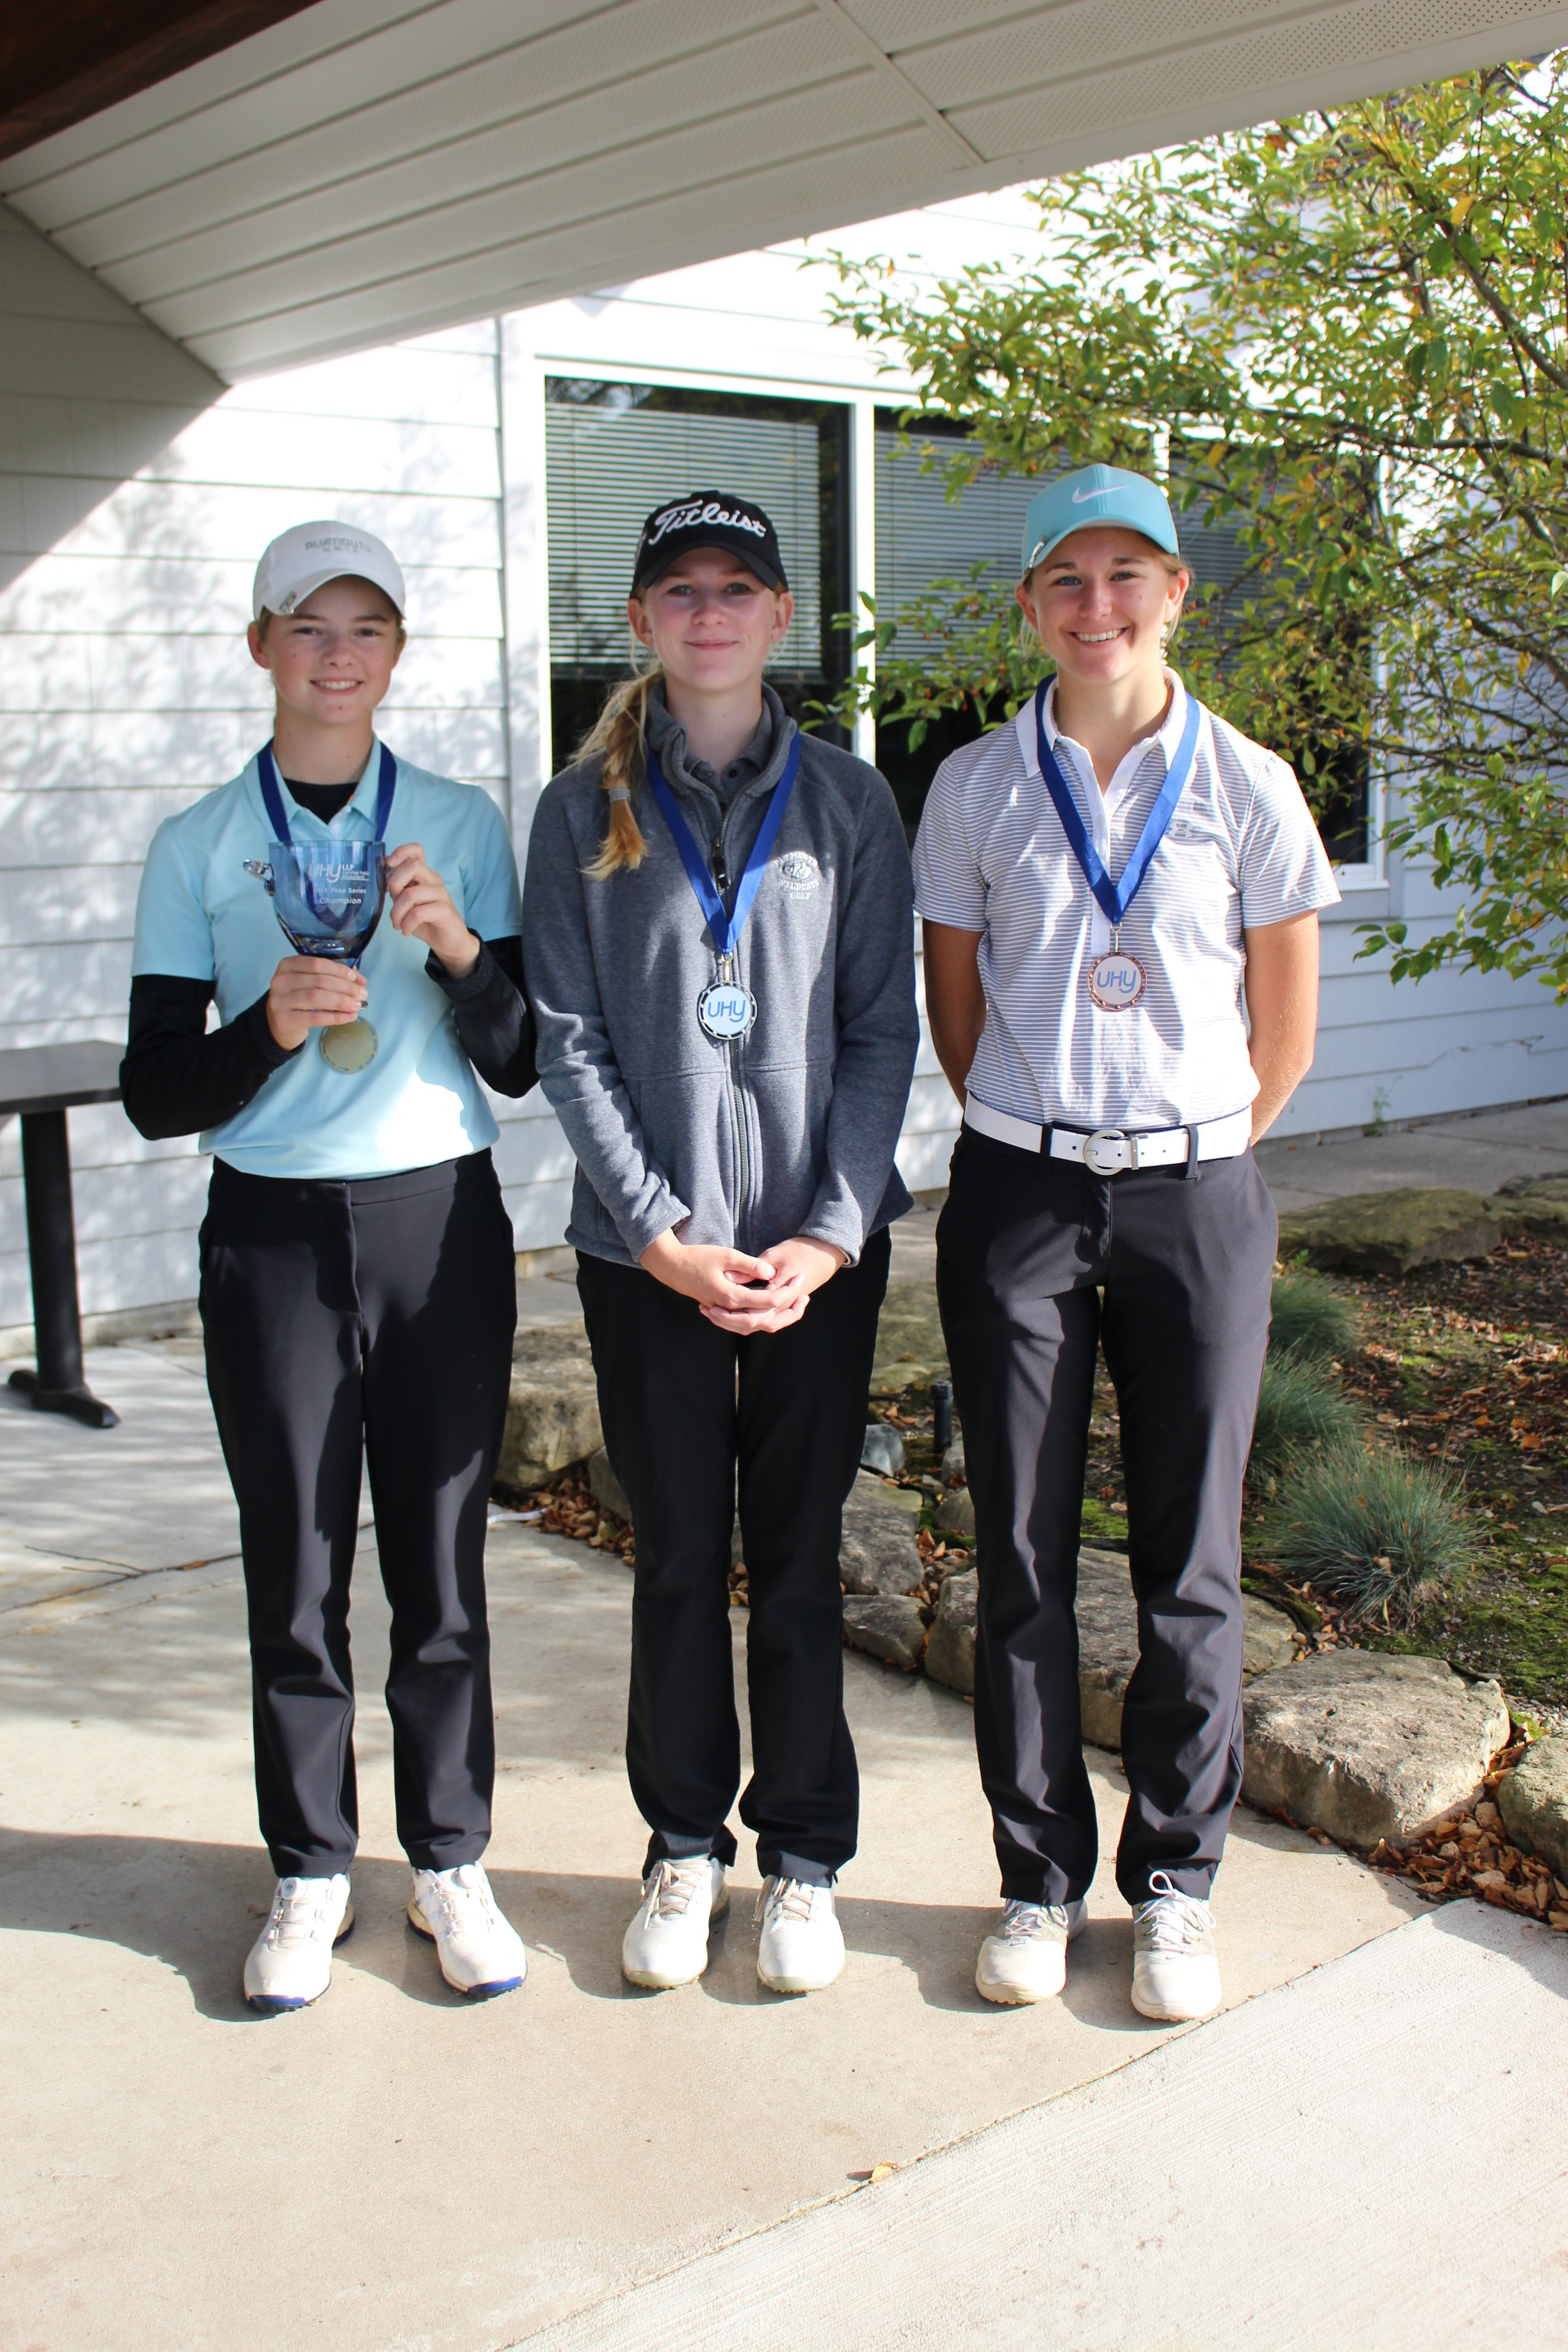 Bridget Boczar from Canton, Michigan was the girls champion, with a 156 total (73-83). Grace Boczar was runner-up (81-78-159), while Sabel Imesch finished third (80-86-166).